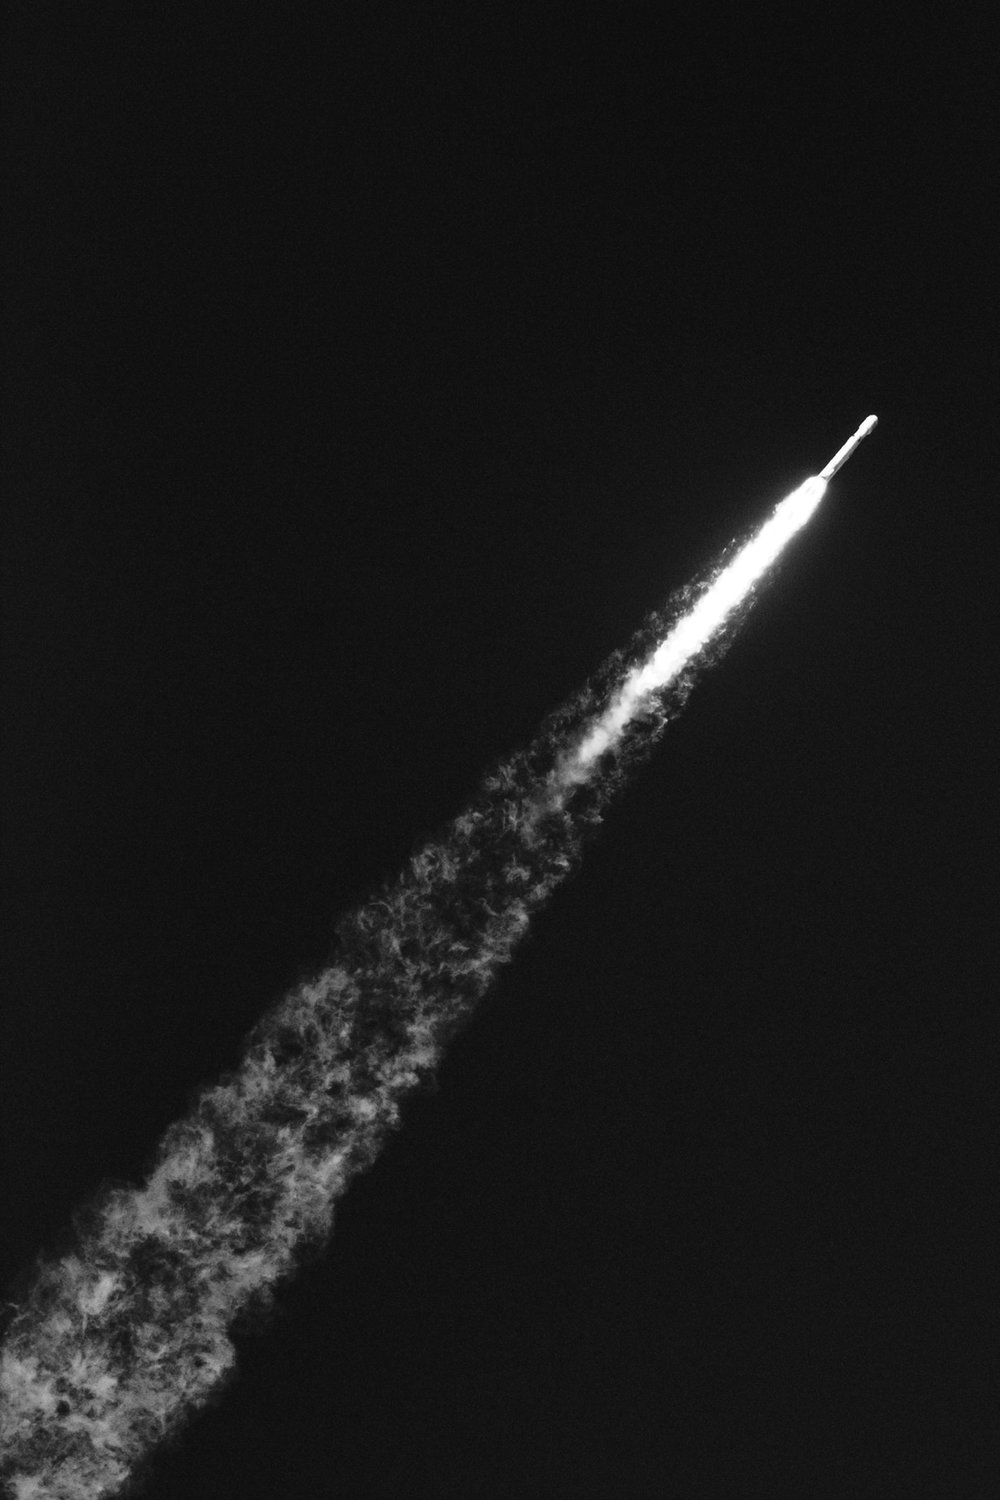 A rocket flying through space